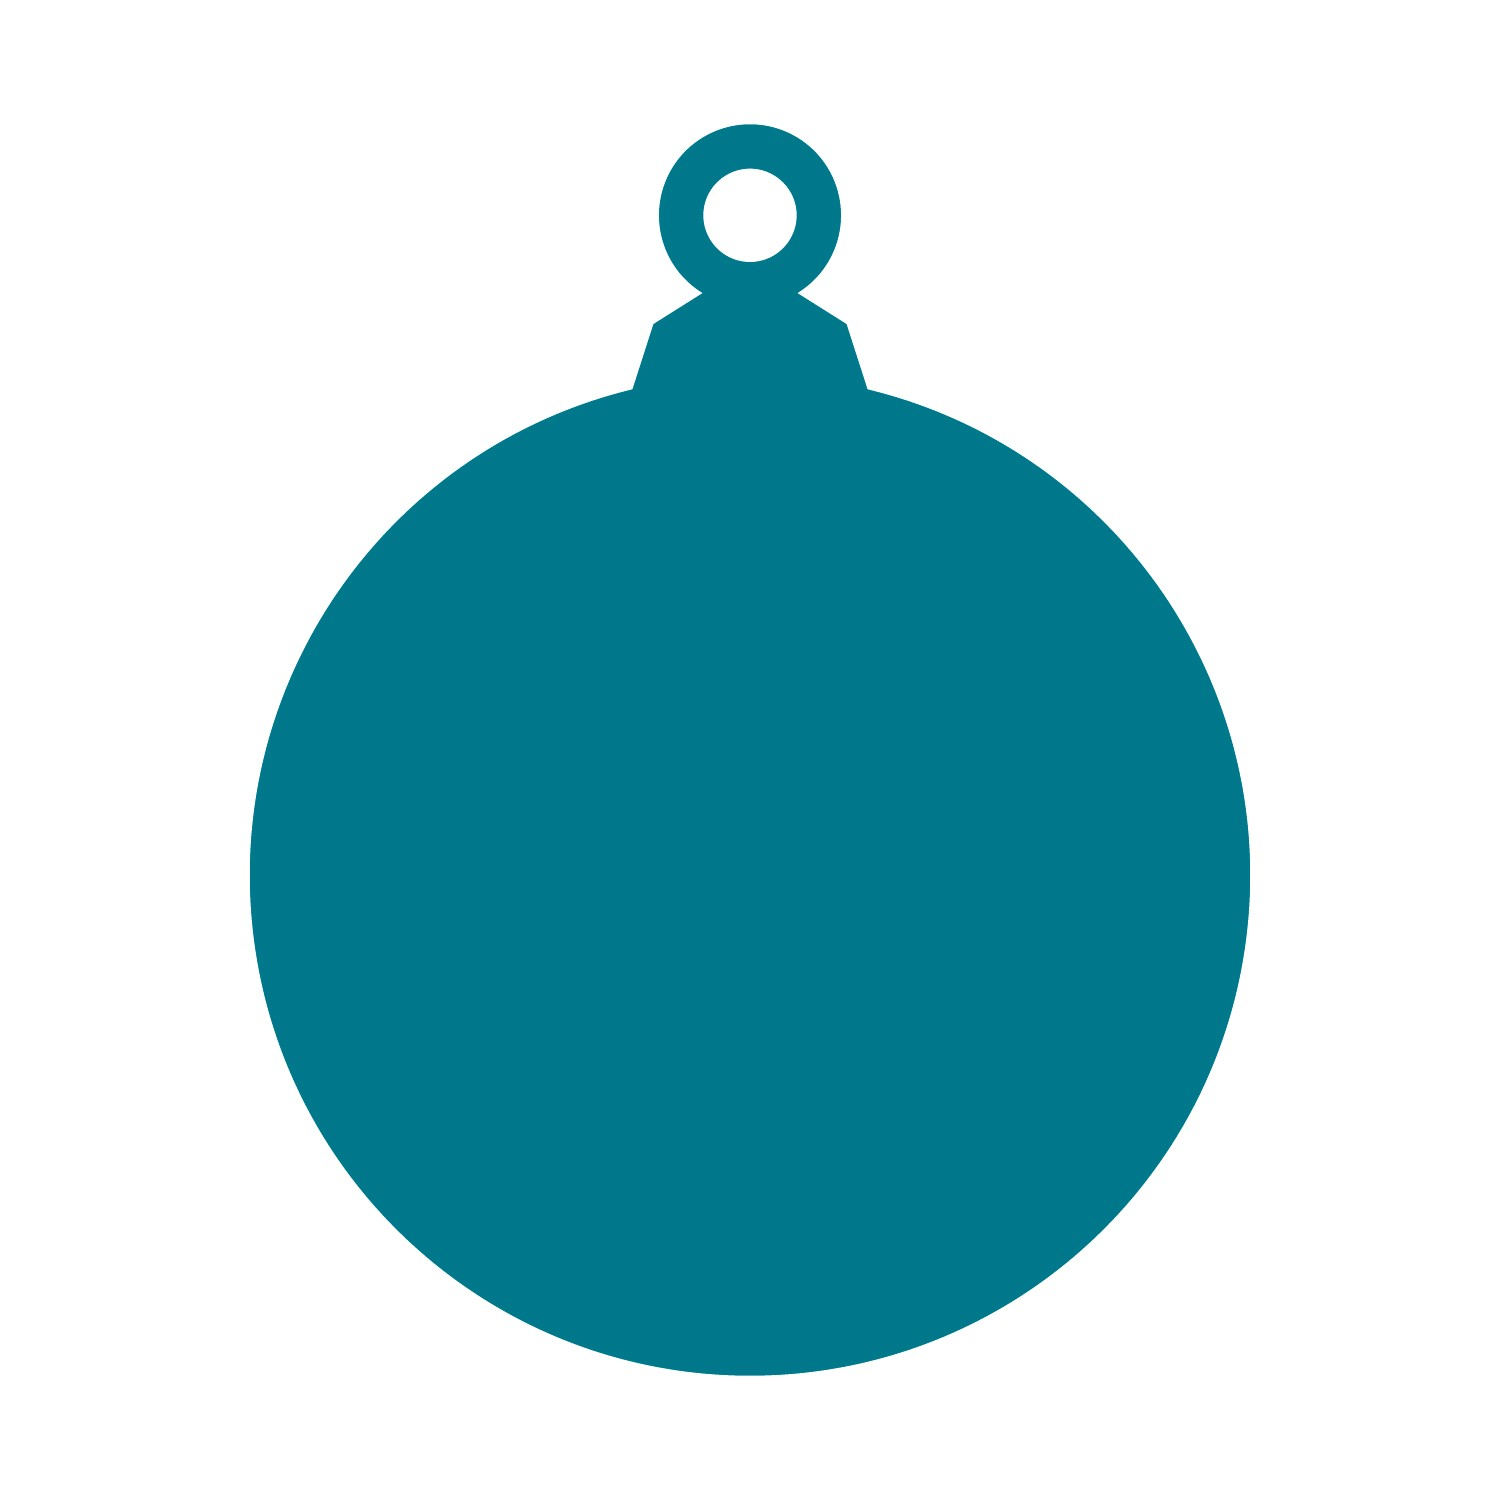 Ornament Icons Clipart Best